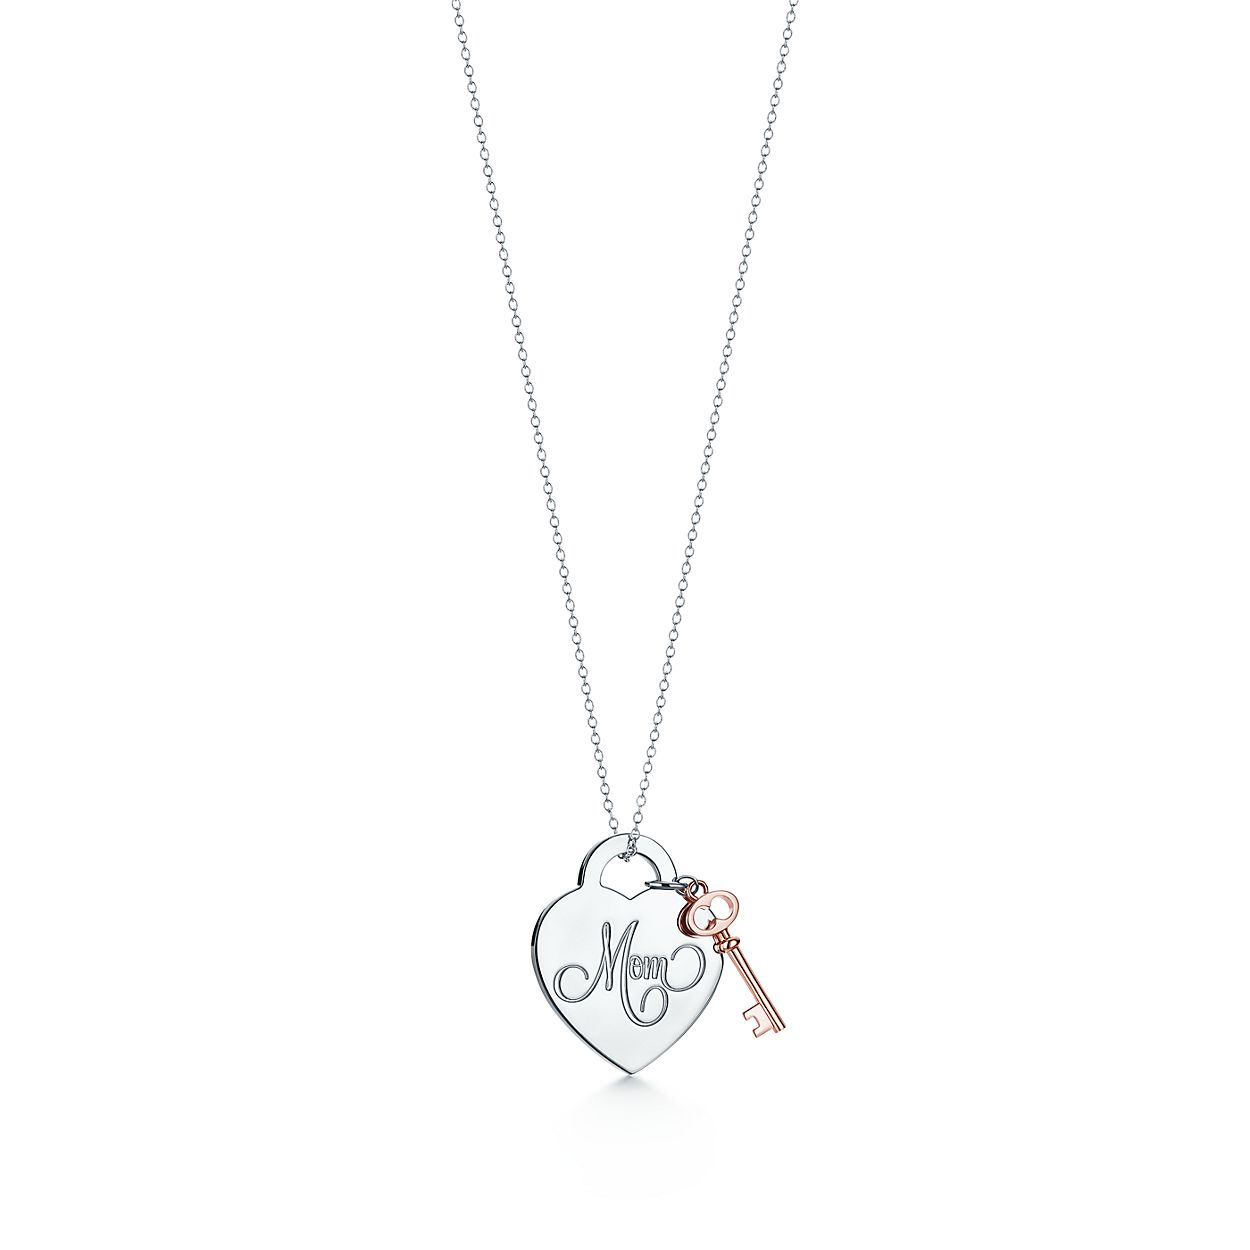 key and handcuffkey s products plated enreverie n pendant silver handcuffs heart necklaces iyd necklace